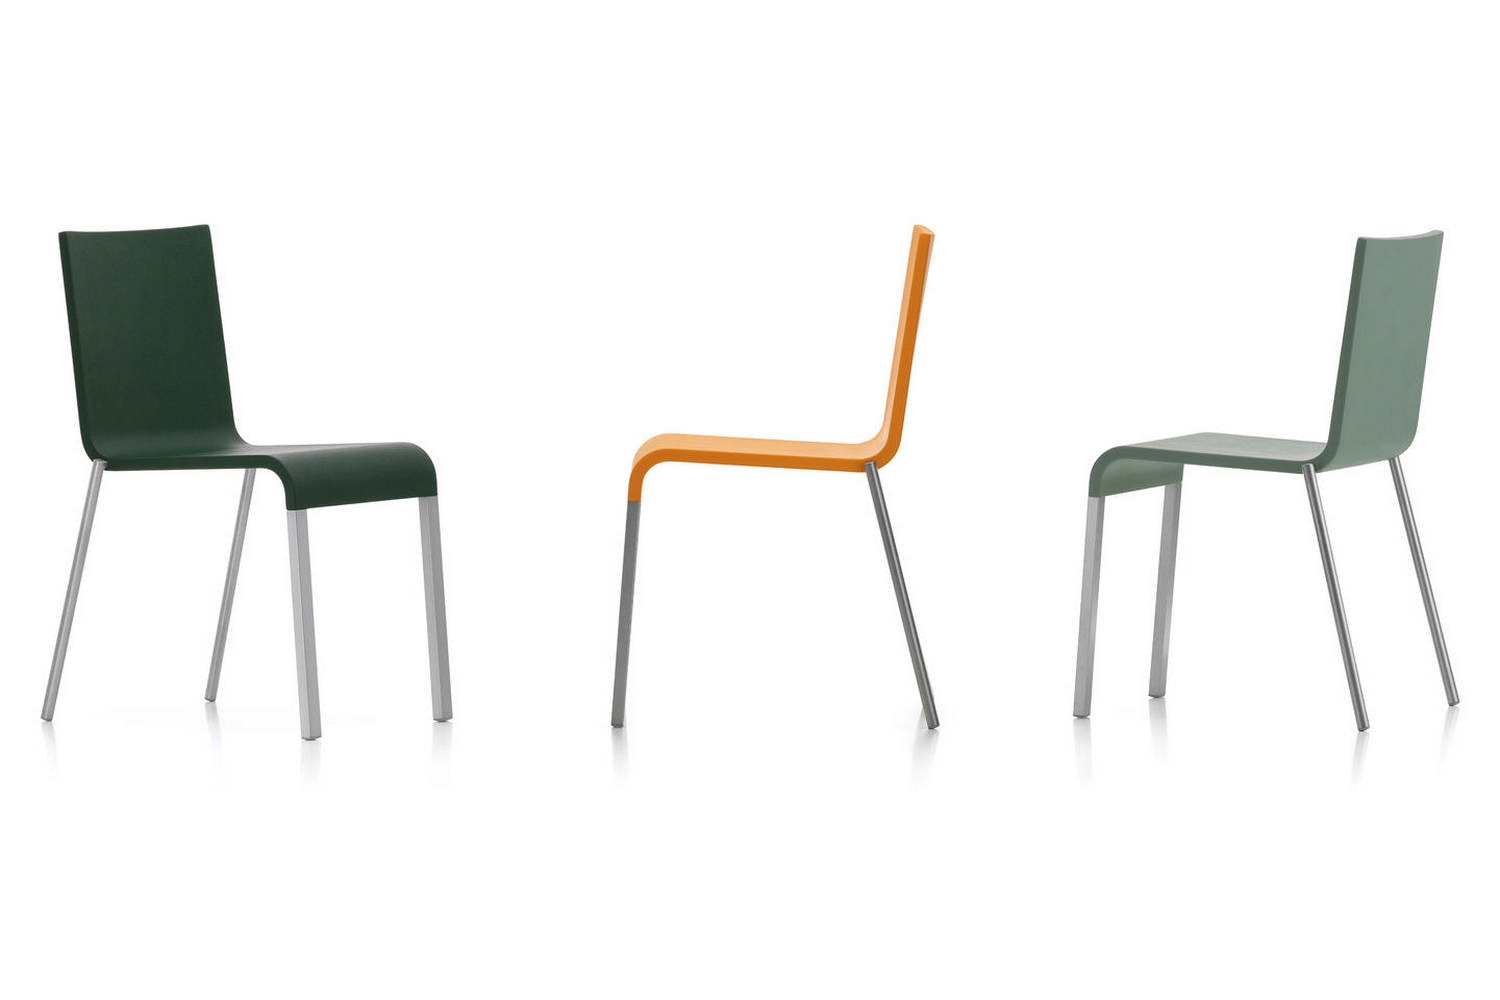 .03 Chair by Maarten van Severen for Vitra